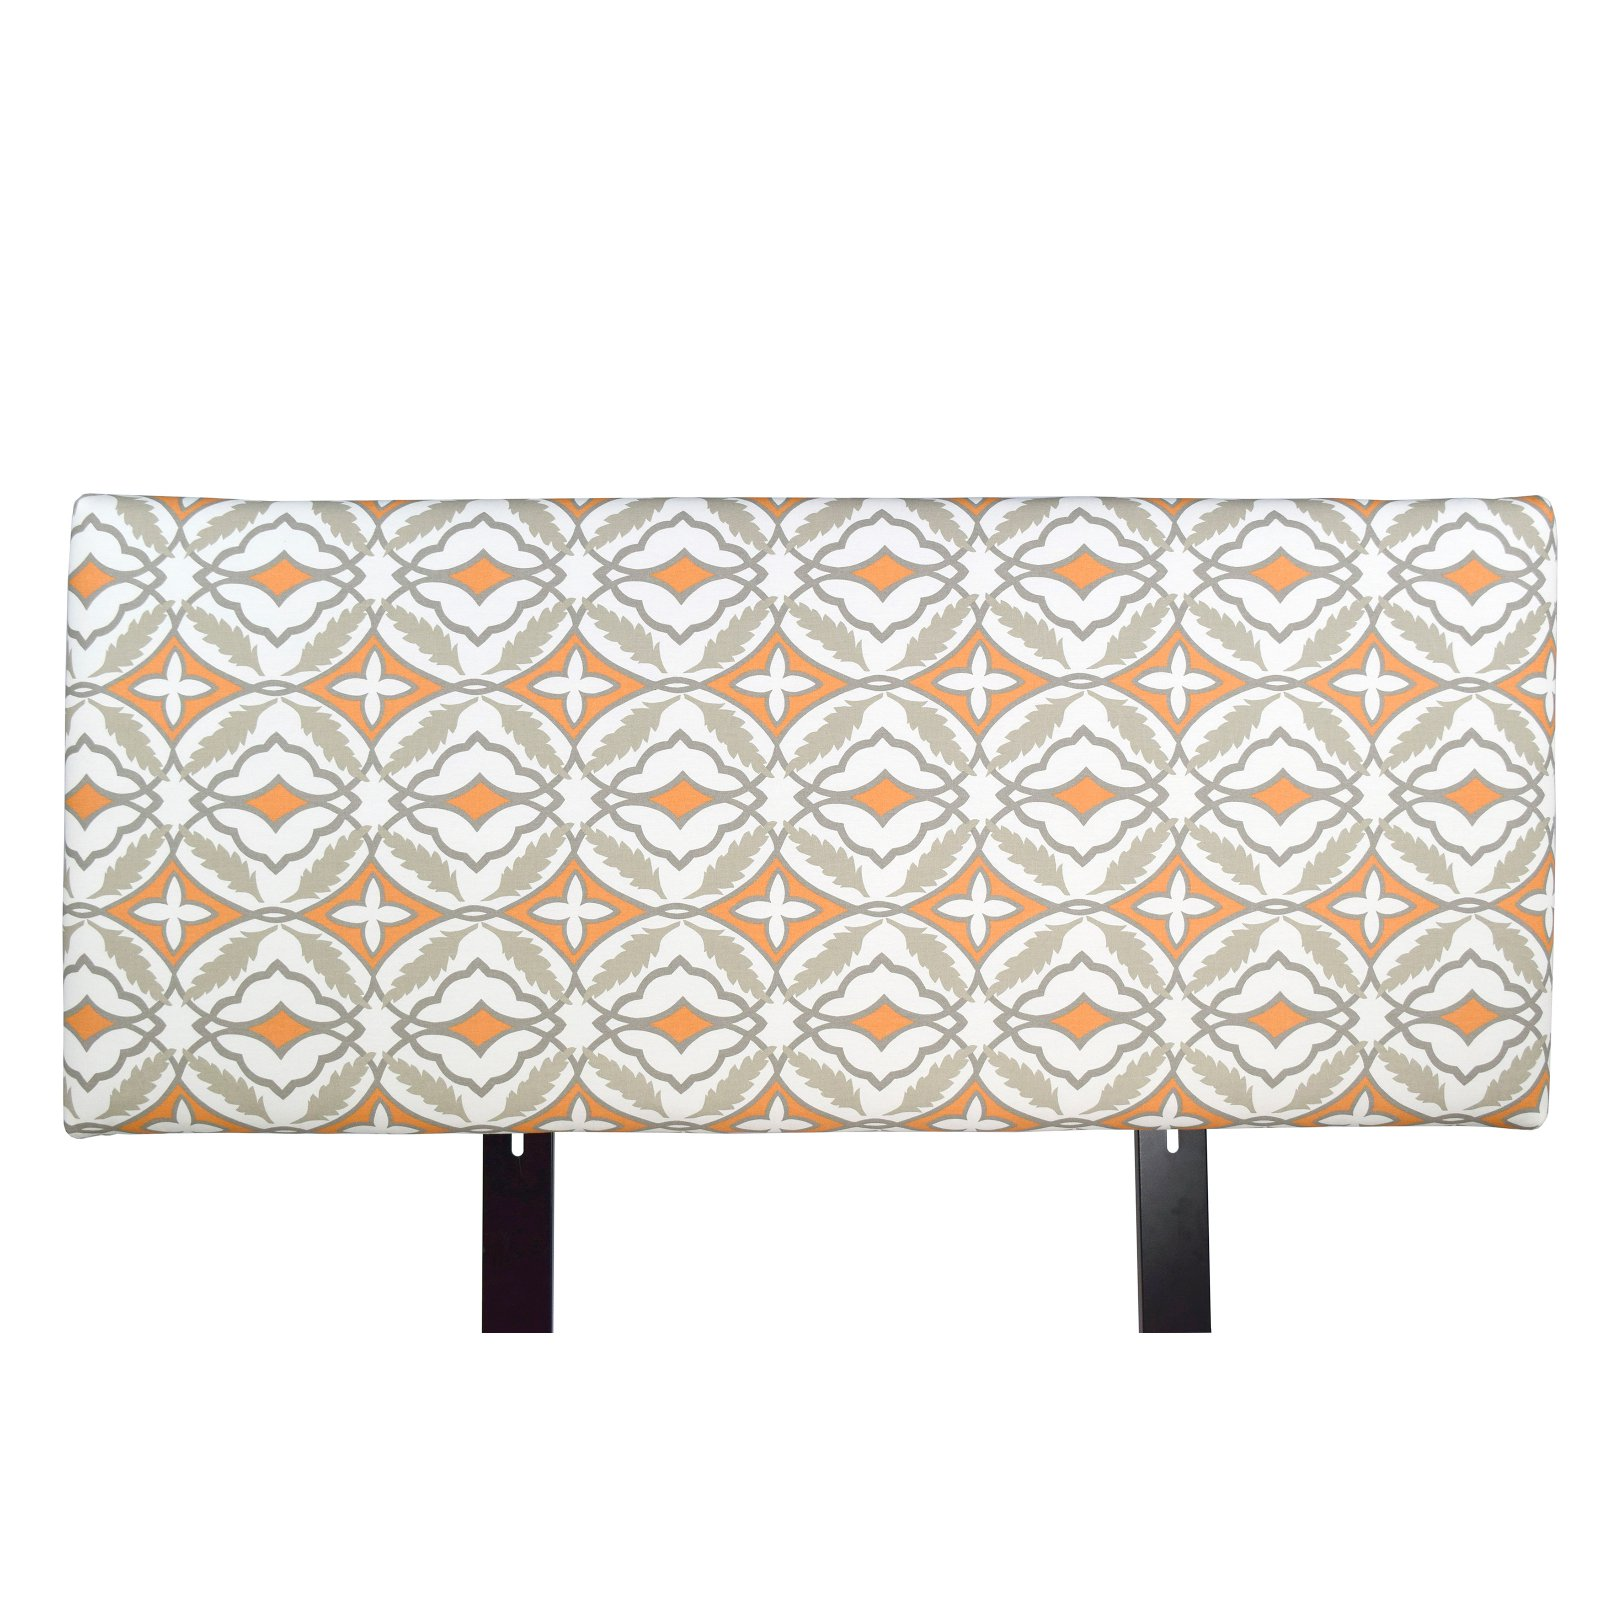 MJL Designs Eden Upholstered Headboard